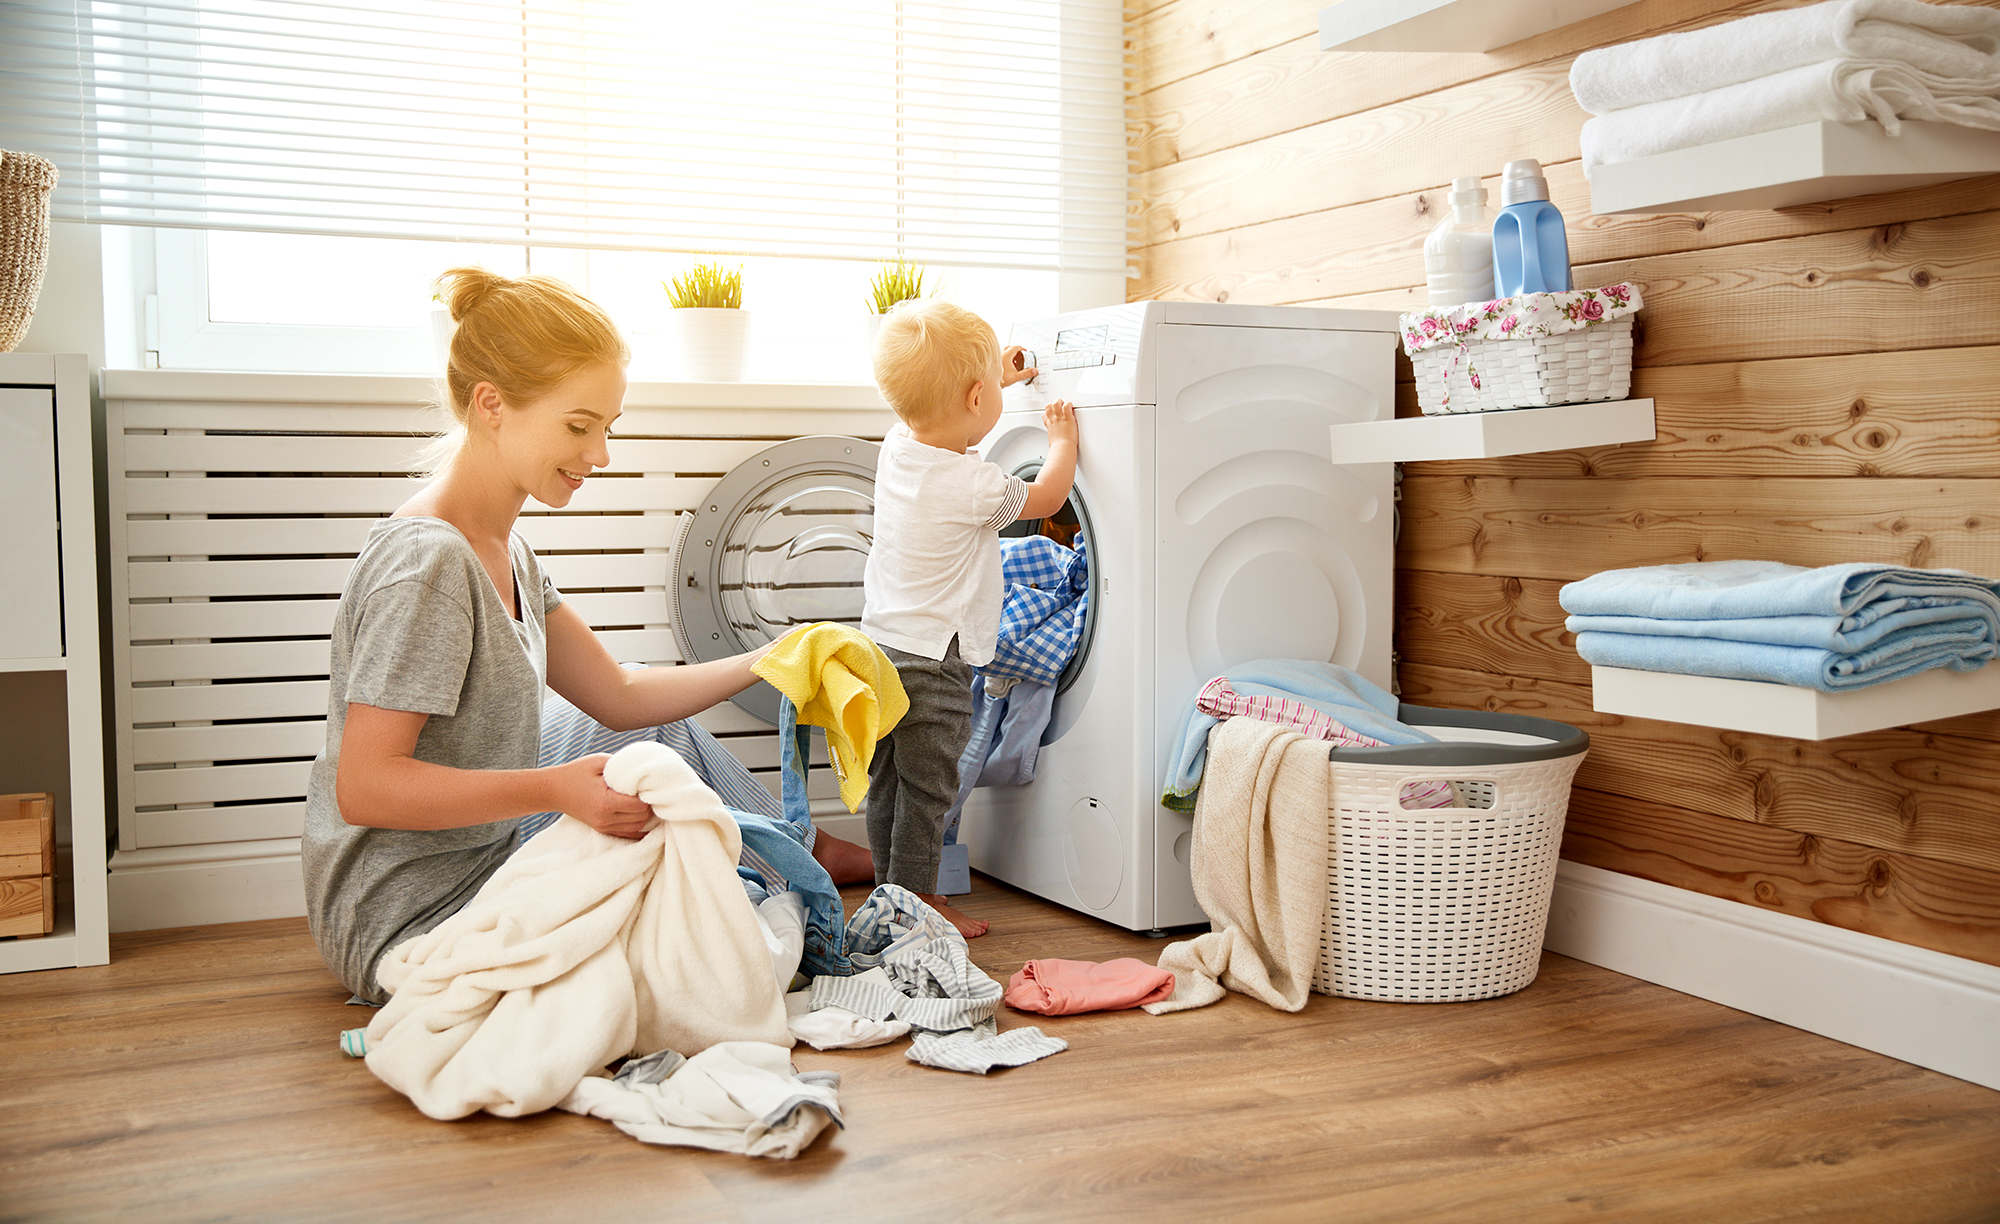 Happy family mother   housewife and children in   laundry load washing machine